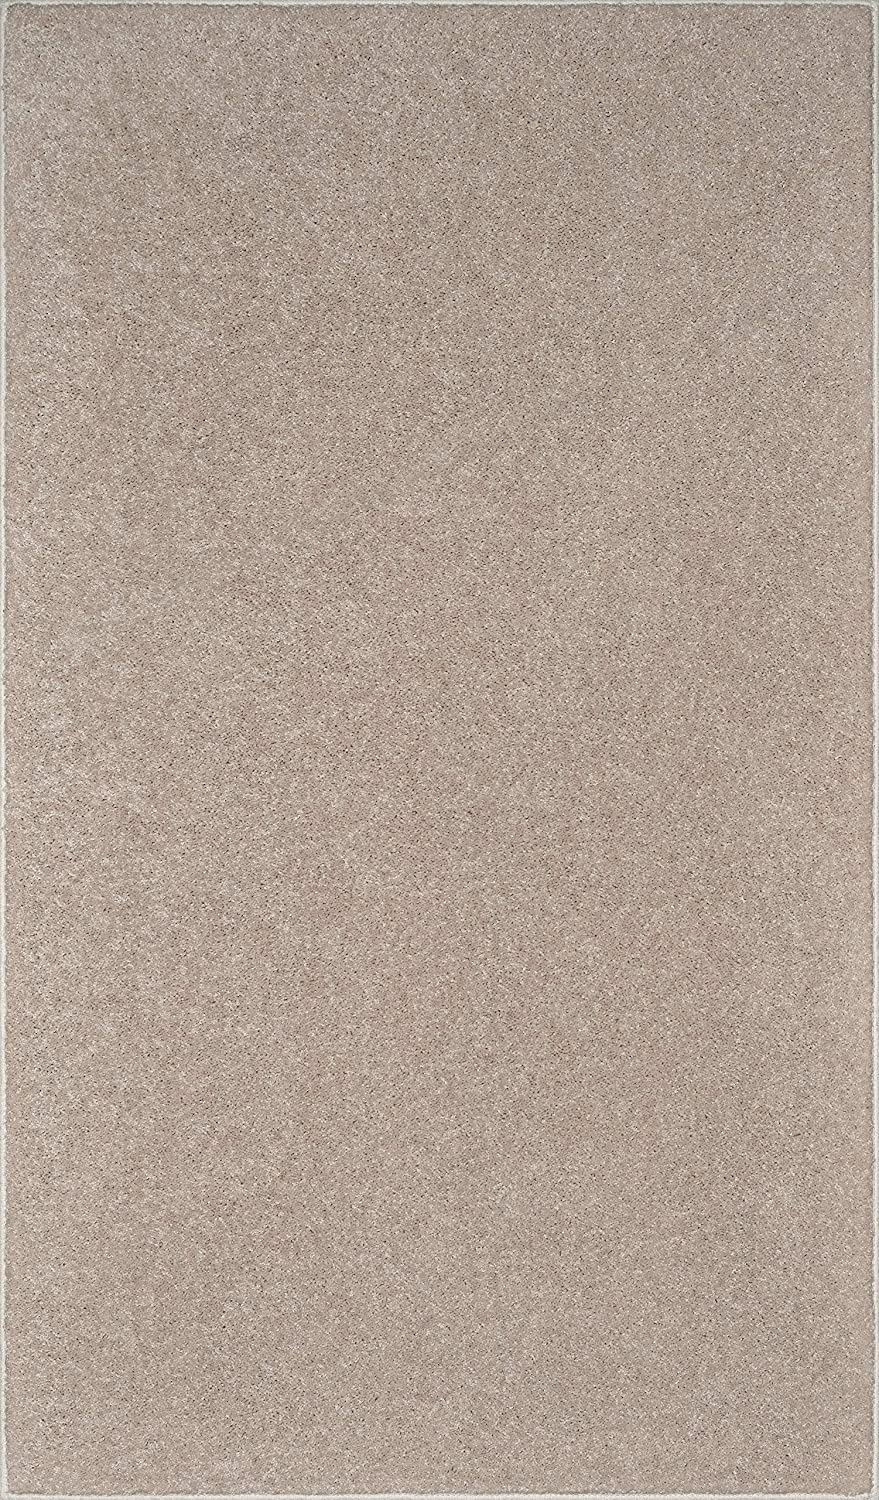 Ambiant Solid Color Oversize Area Rug Beige, 5' x 7'